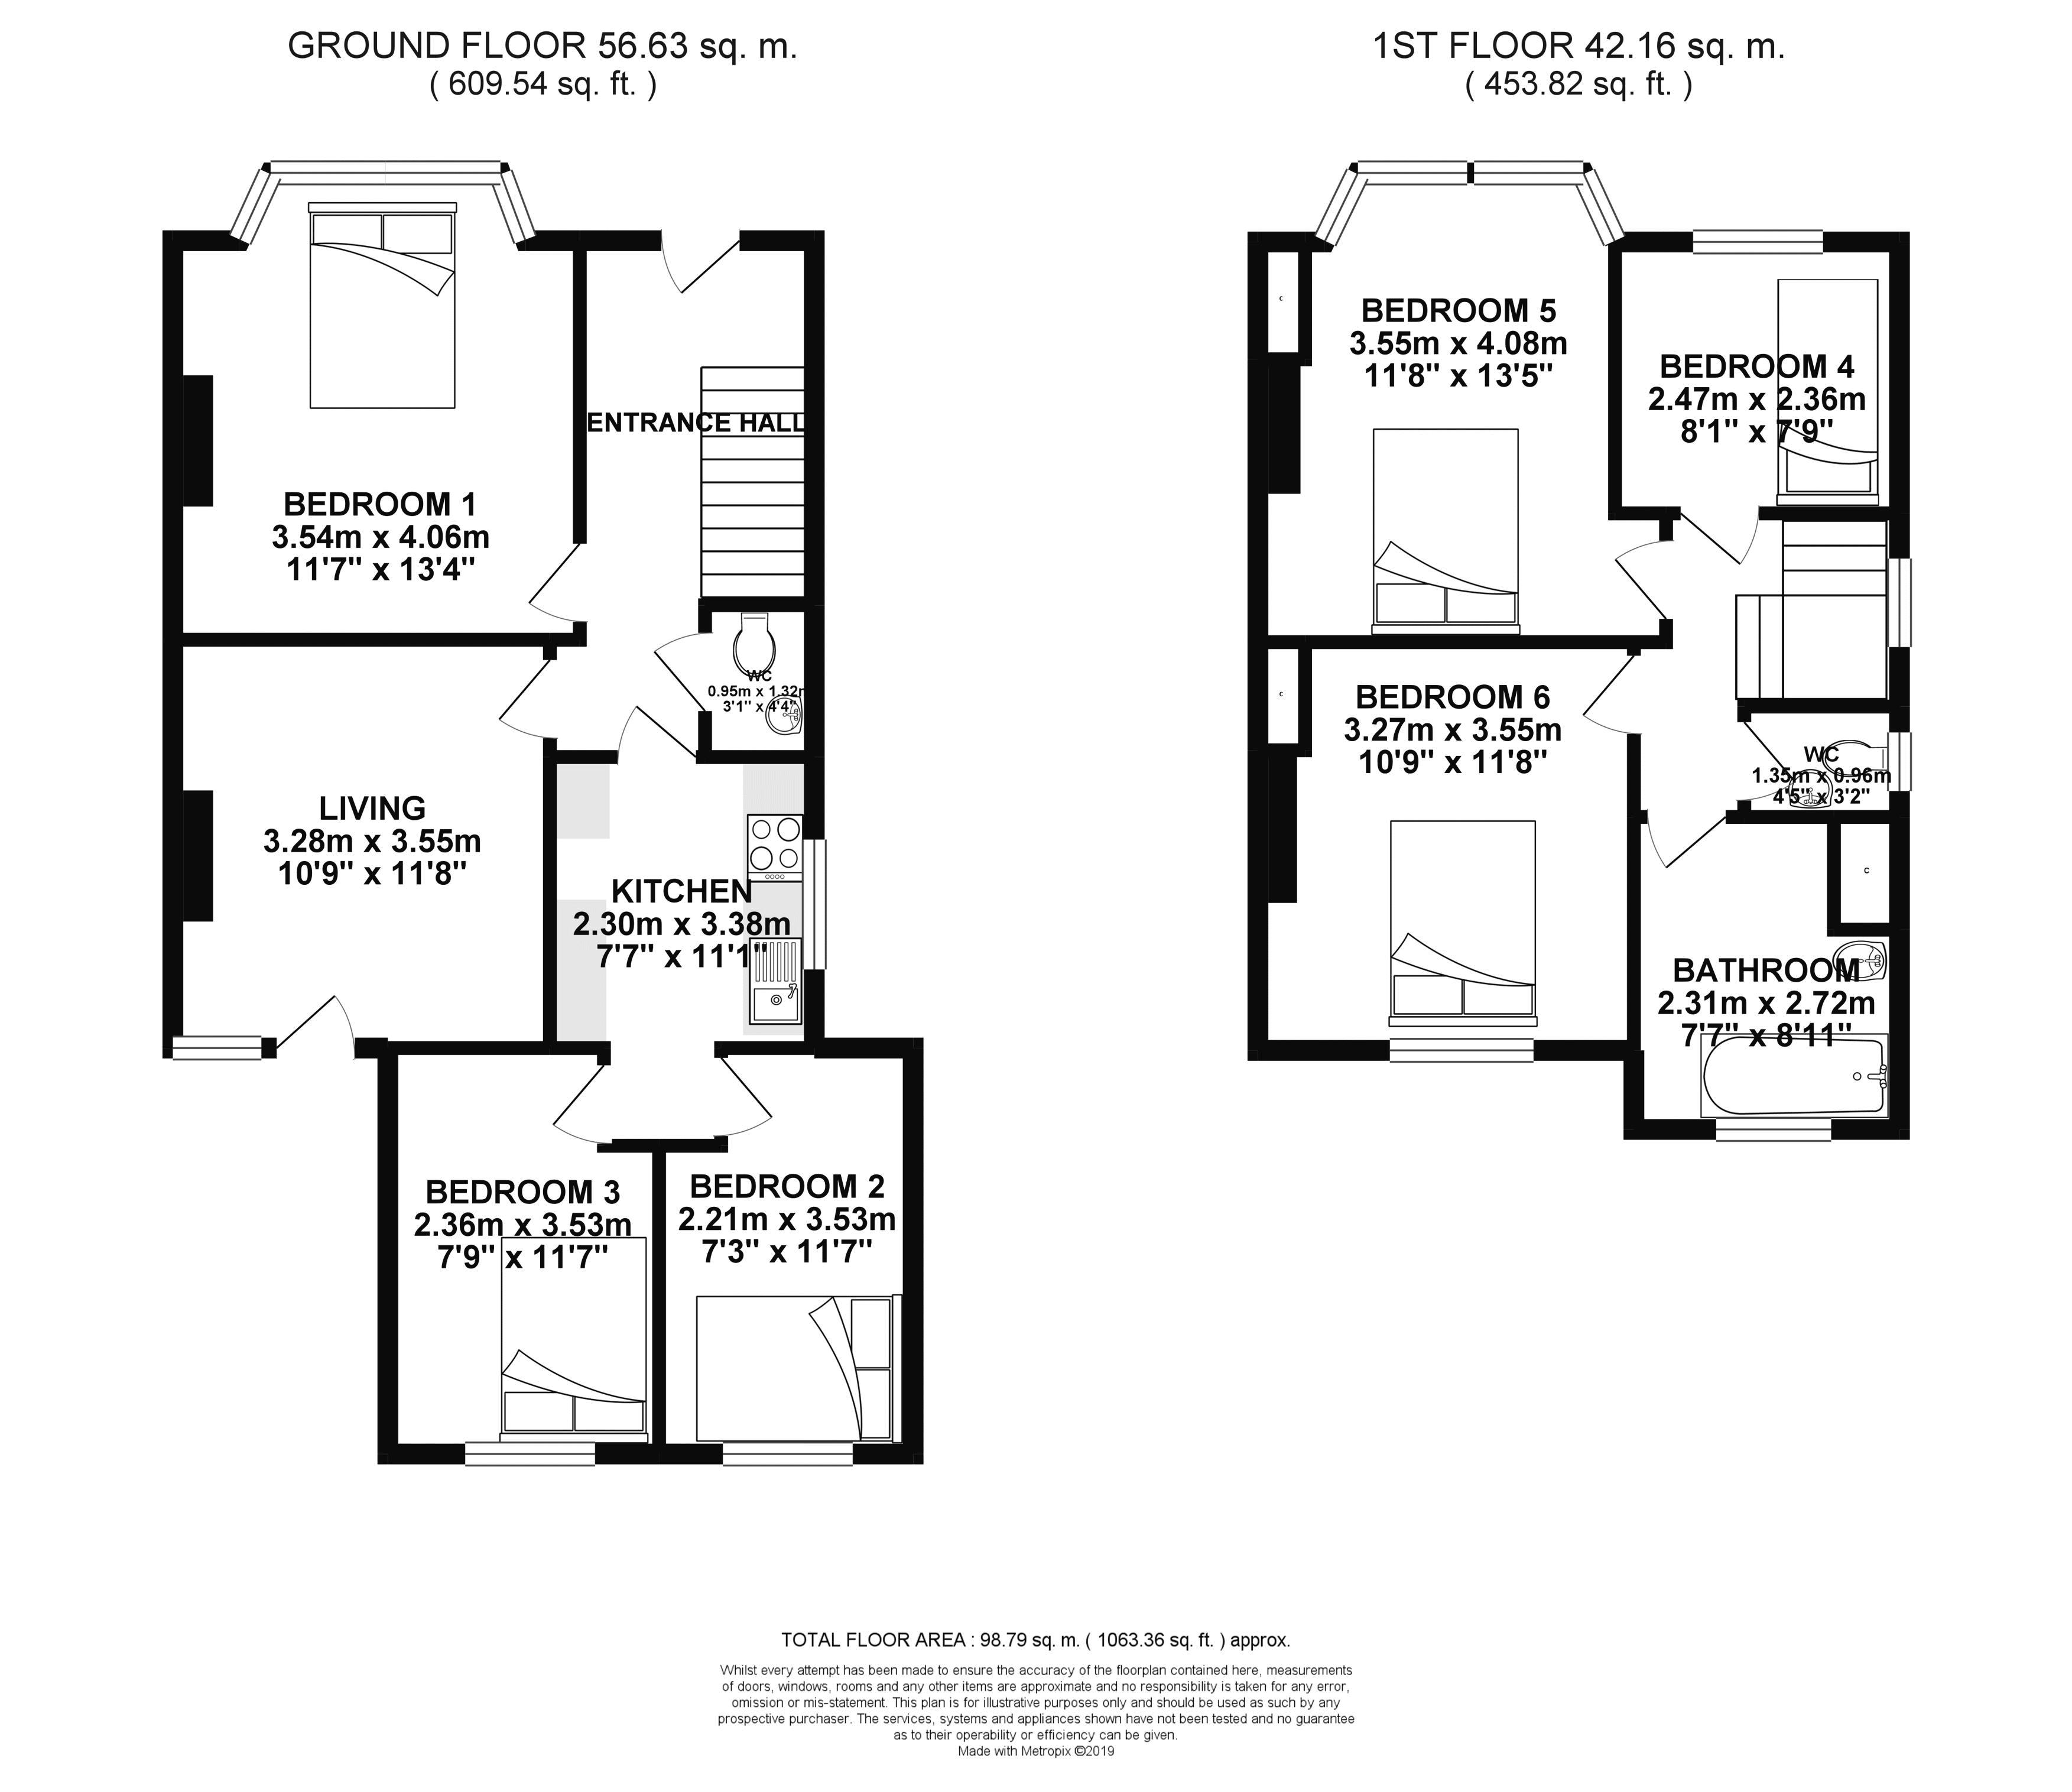 Floor plans for Park Road, Brighton property for sale in Coldean, Brighton by Coapt